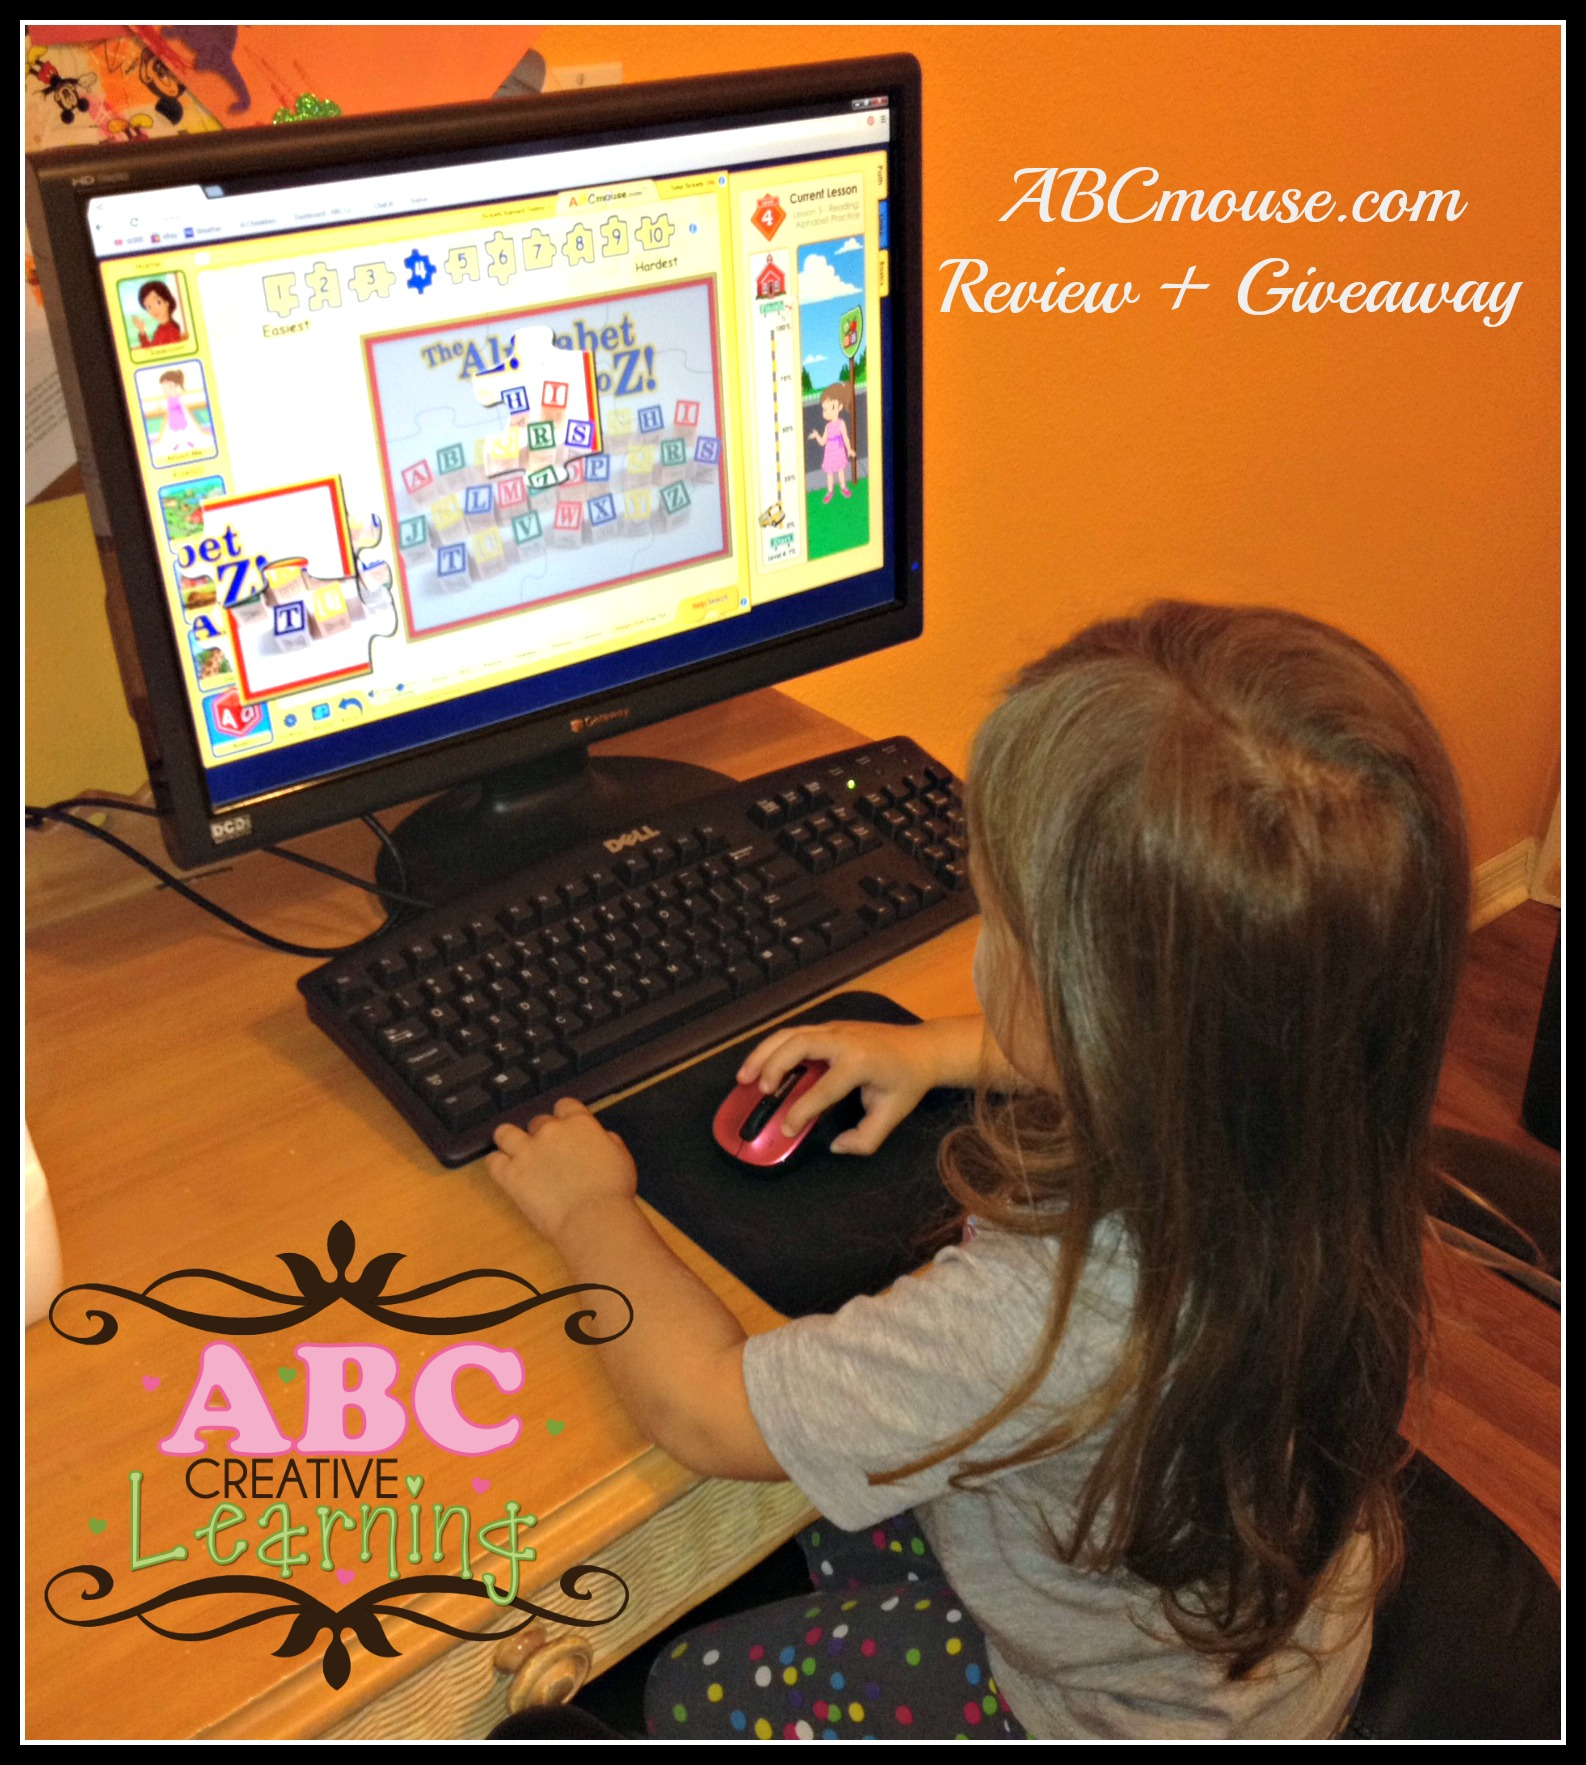 ABCmouse.com Review and Giveaway